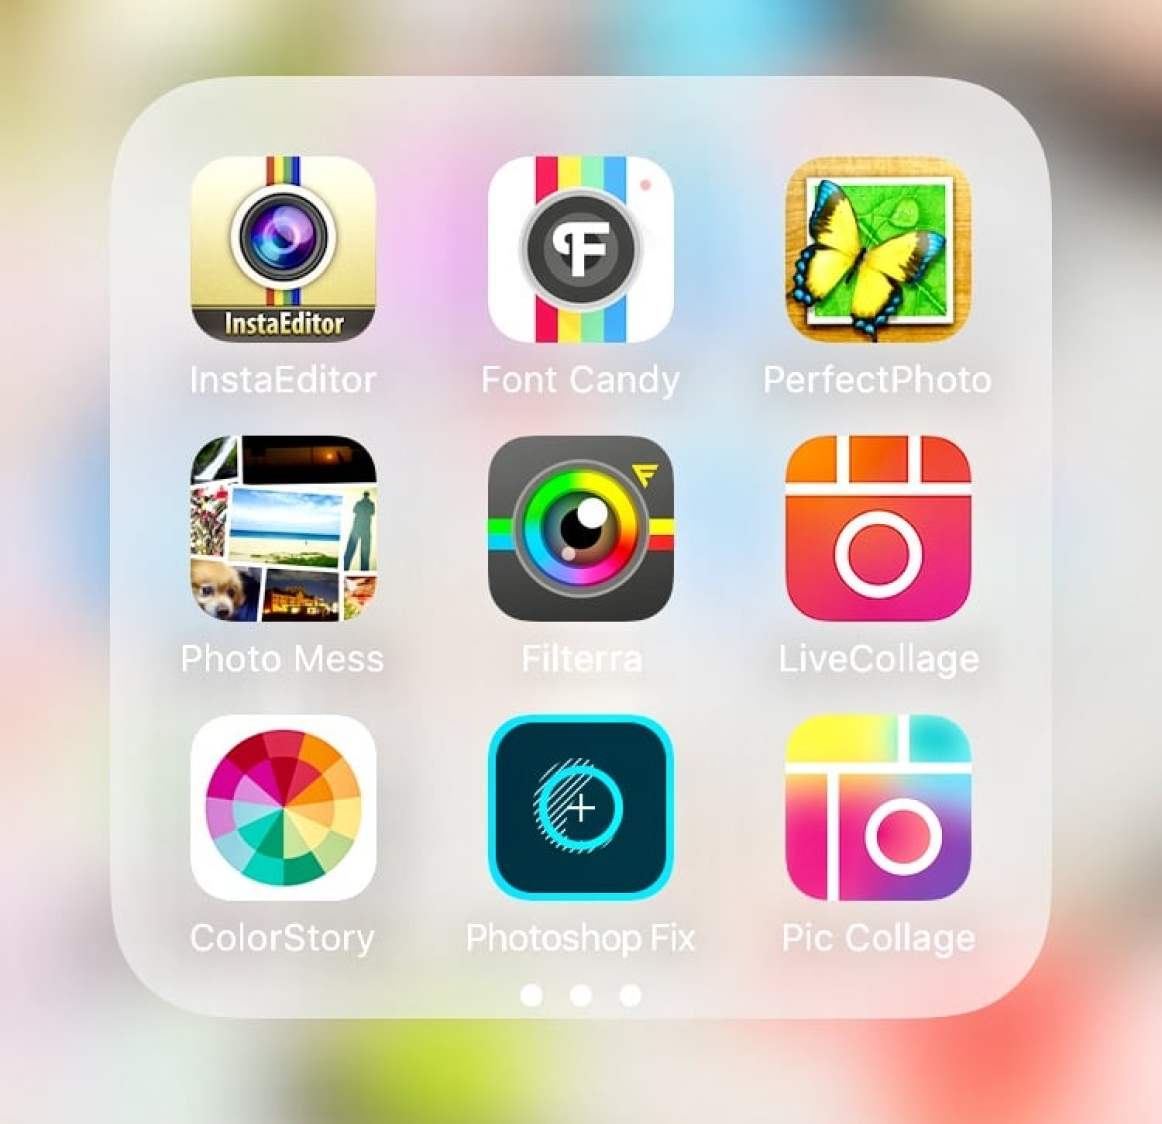 Image shows the photo editing apps I use